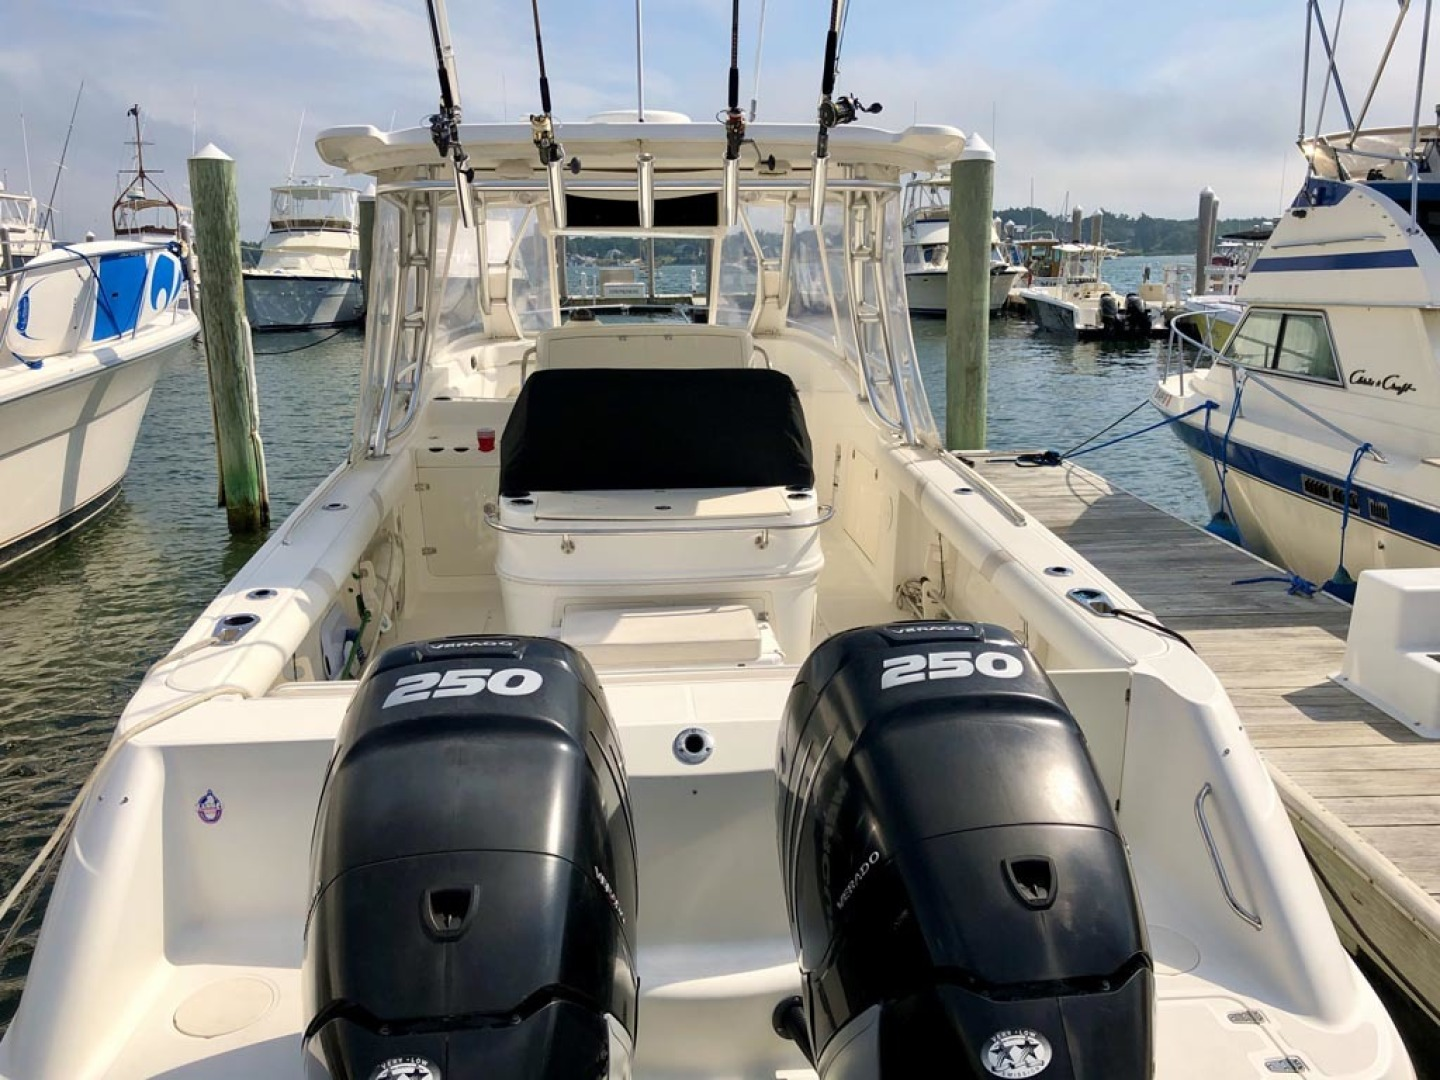 Boston Whaler-320 Outrage Cuddy Cabin 2008 -Onset-Massachusetts-United States-Twin Mercury Verado 250s-1447542 | Thumbnail